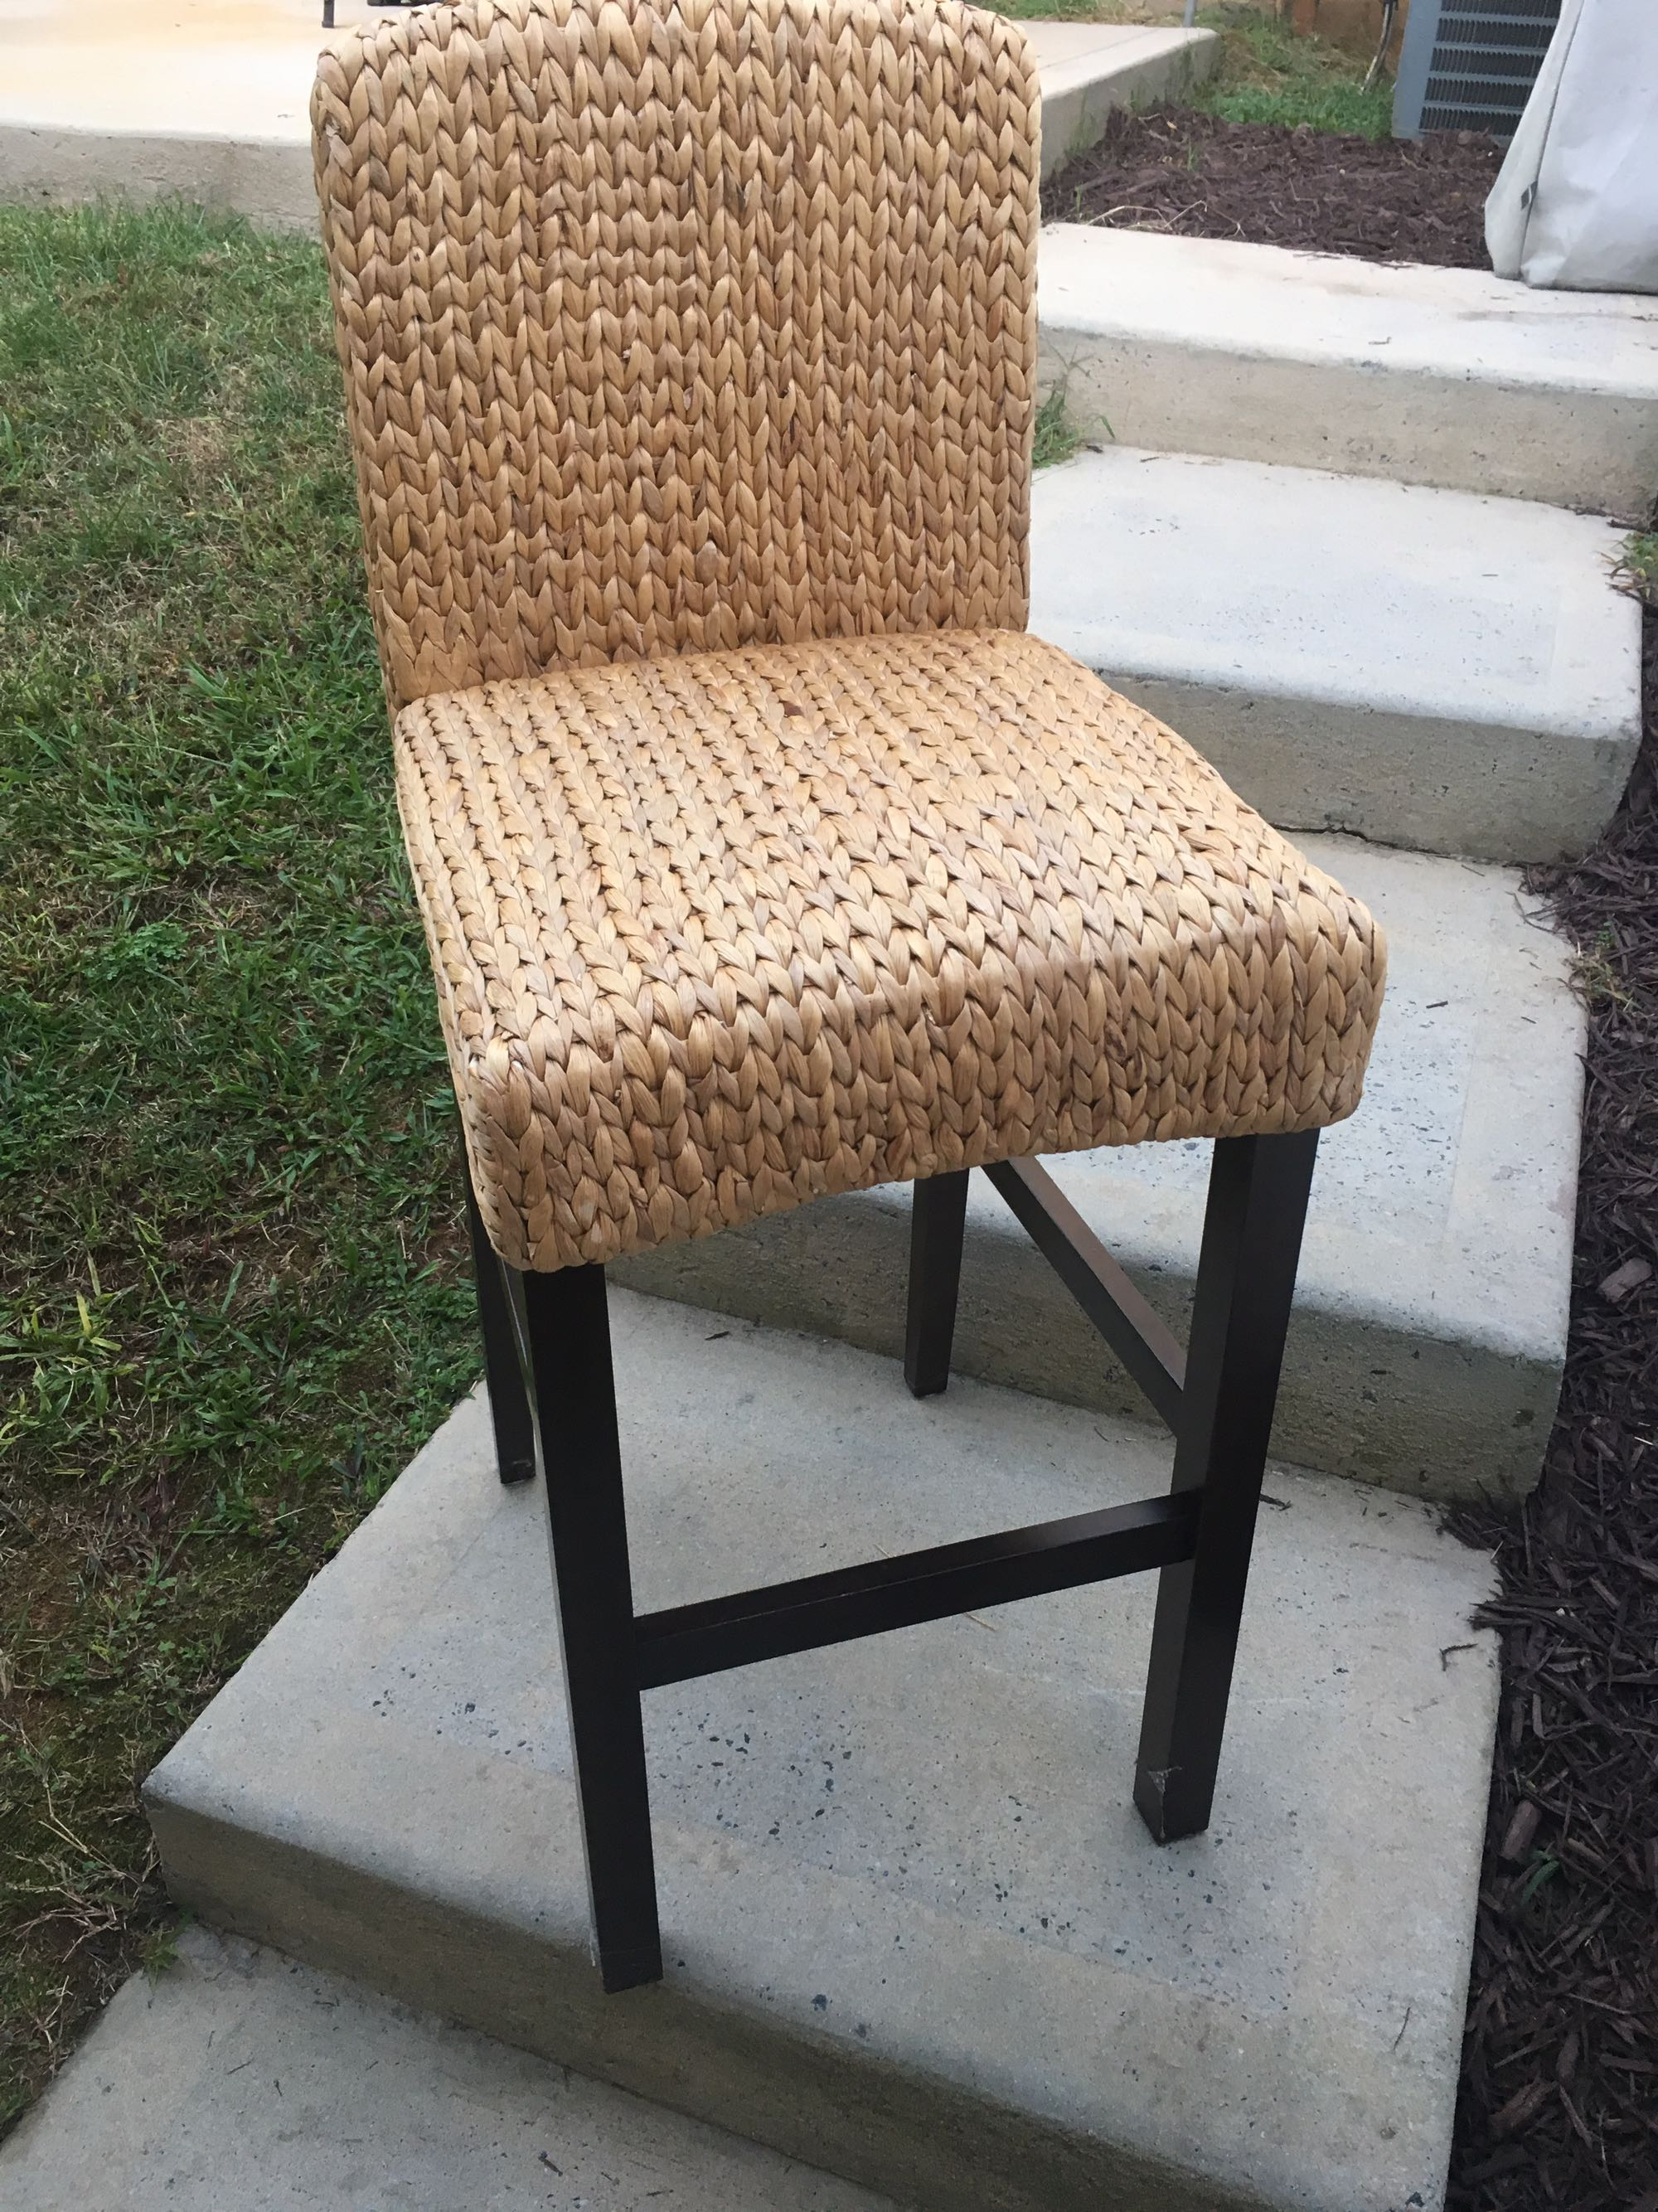 3 Andres seagrass bar stools